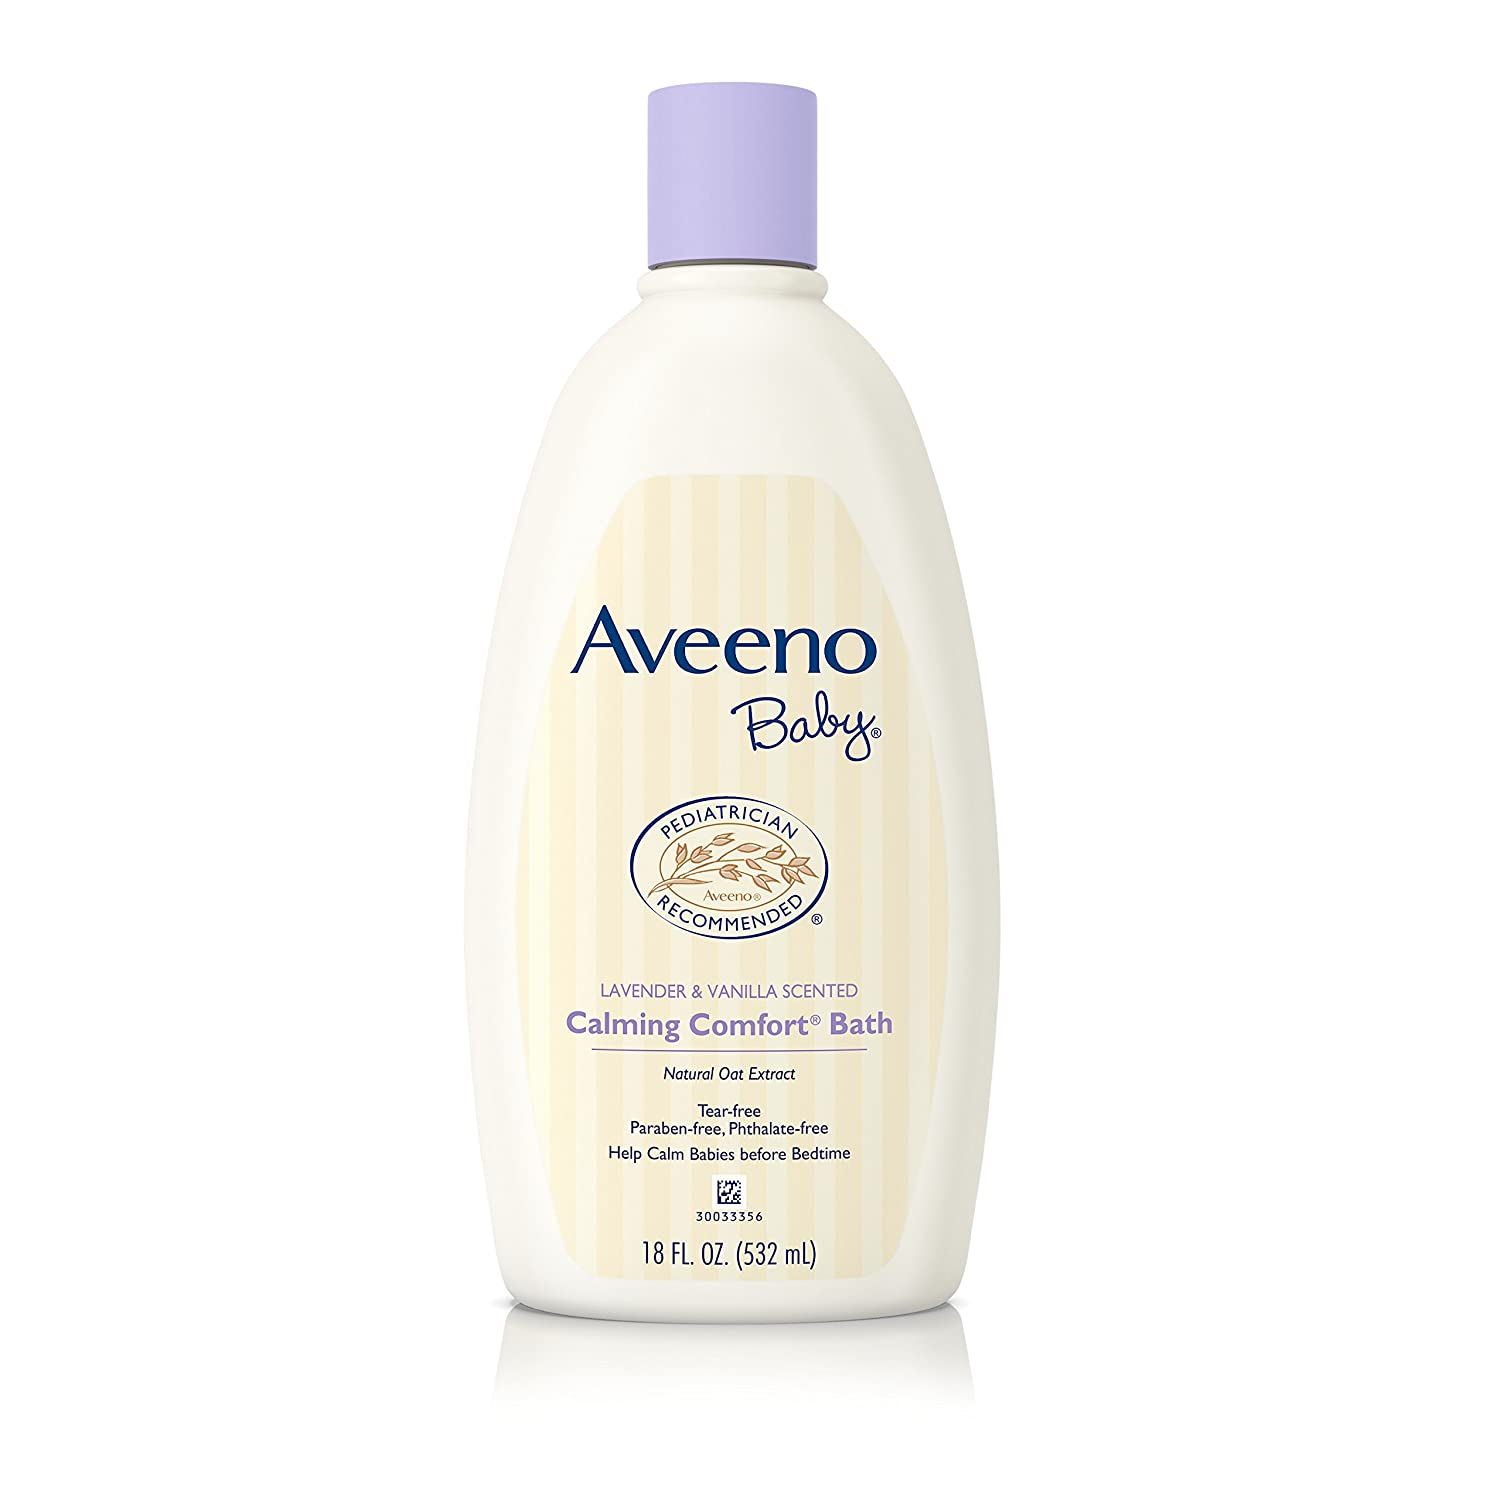 Aveeno Baby Calming Comfort Bath With Lavender And Vanilla, 18 Oz 381371019427